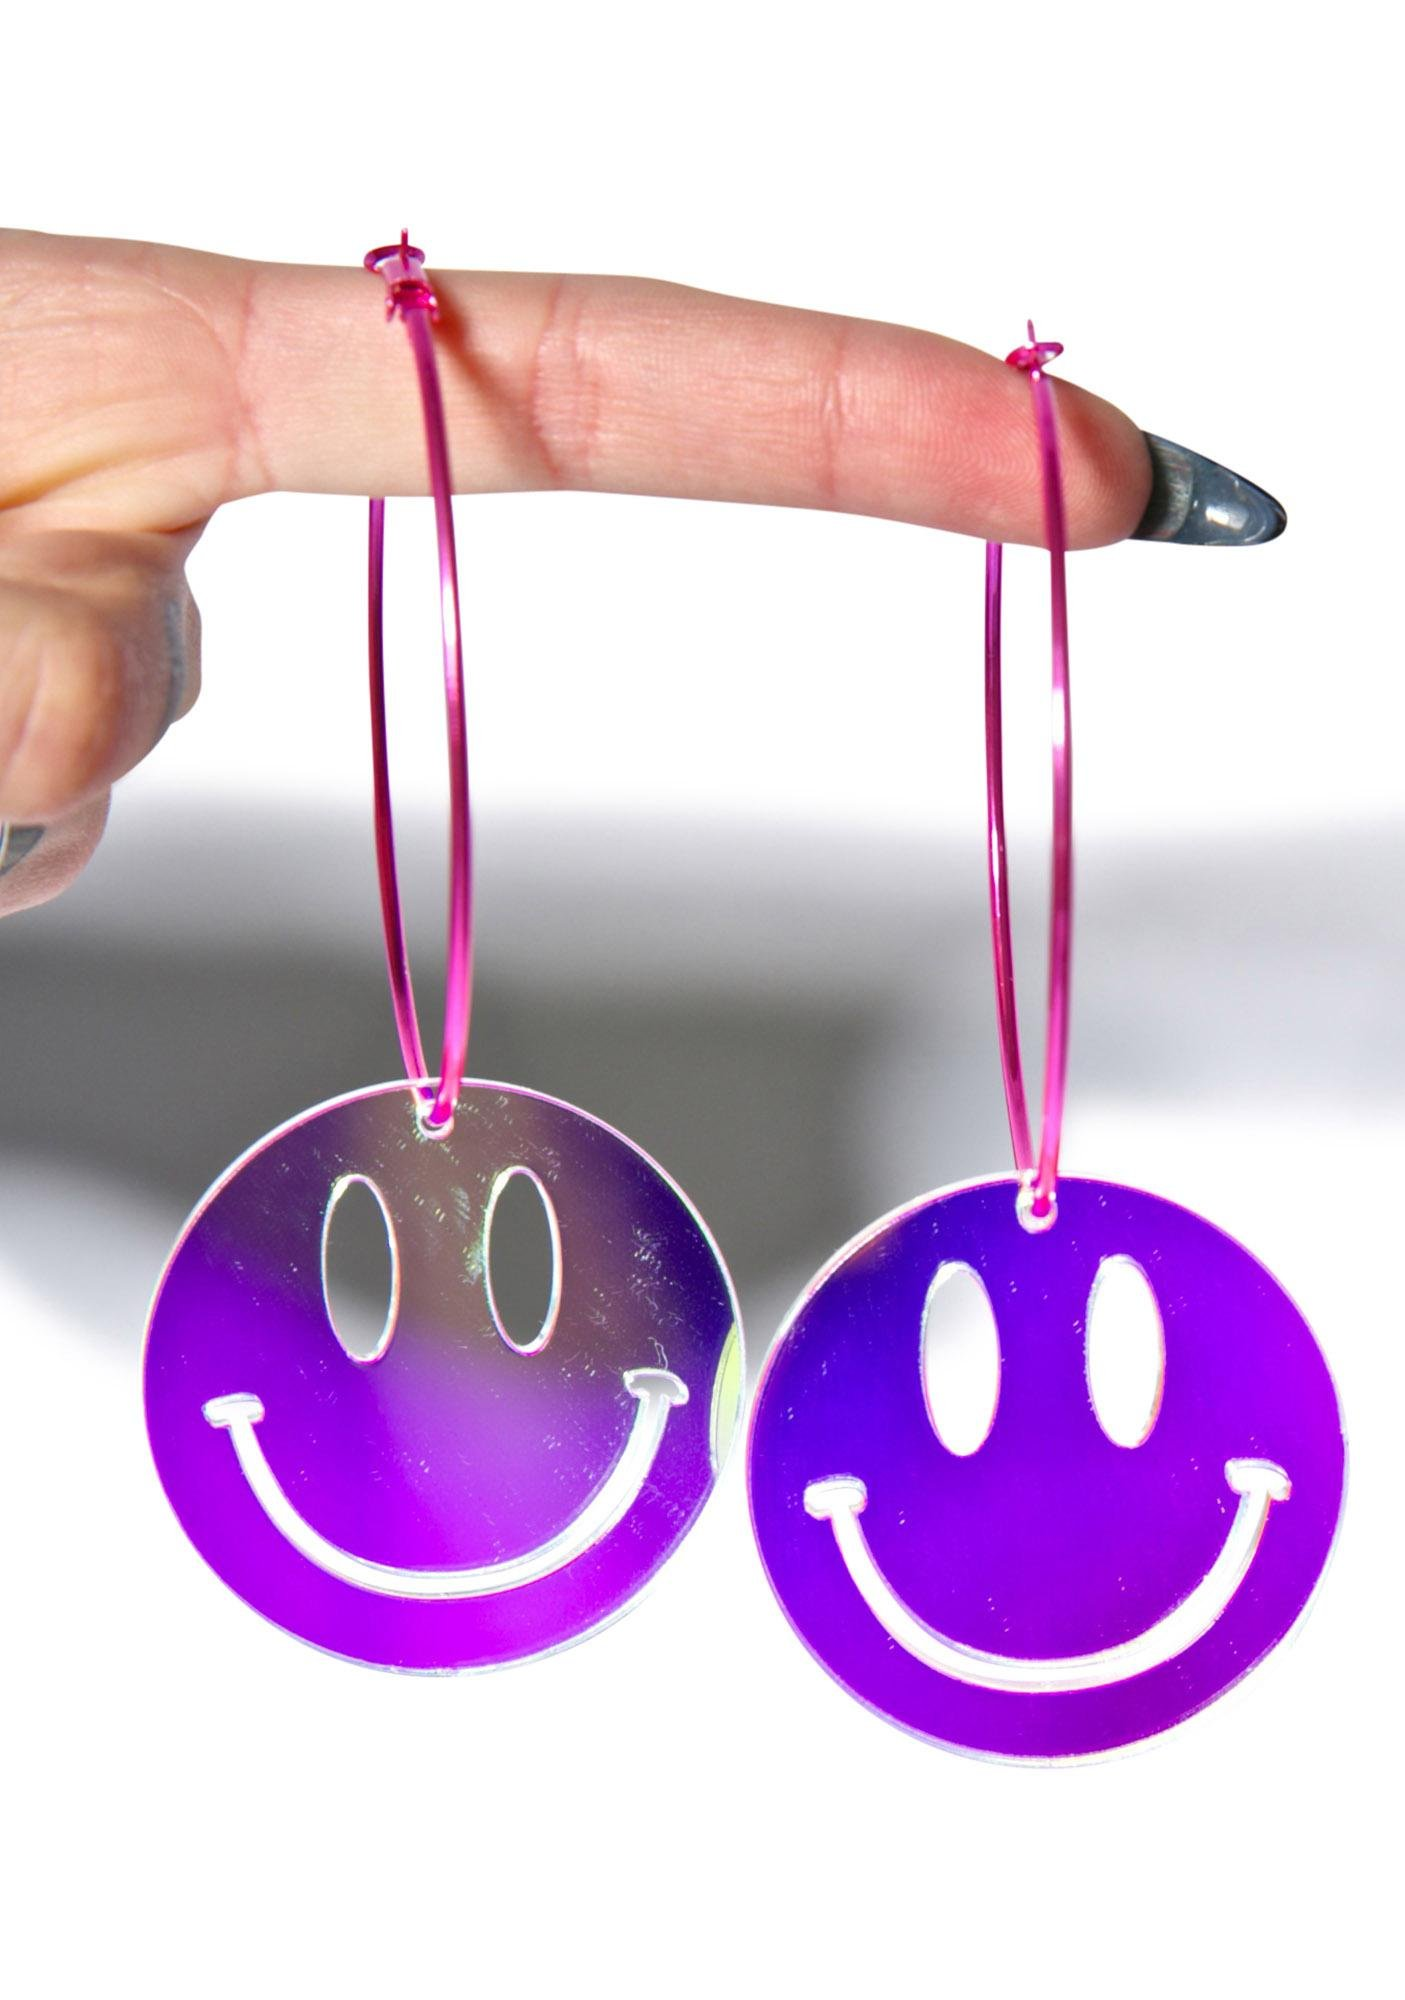 Suzywan Deluxe Smiley Face Hoop Earrings